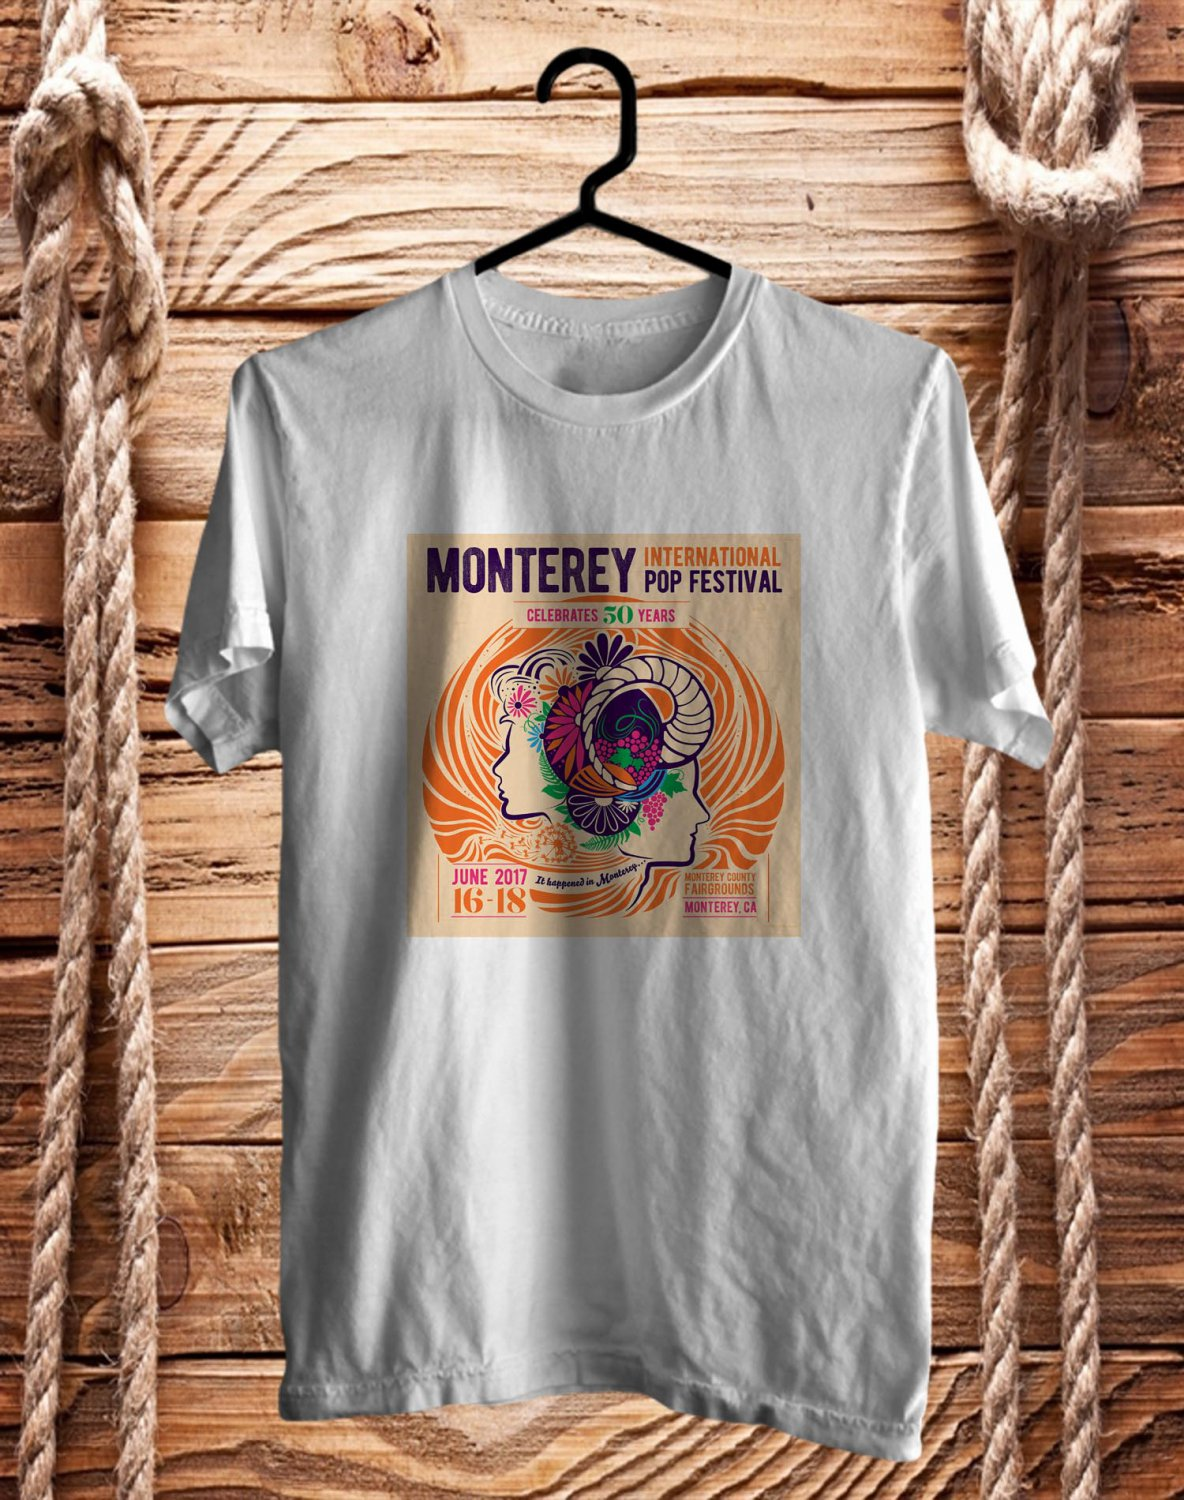 Monterey International Pop Fest 2017 White Tee's Front Side by Complexart z1